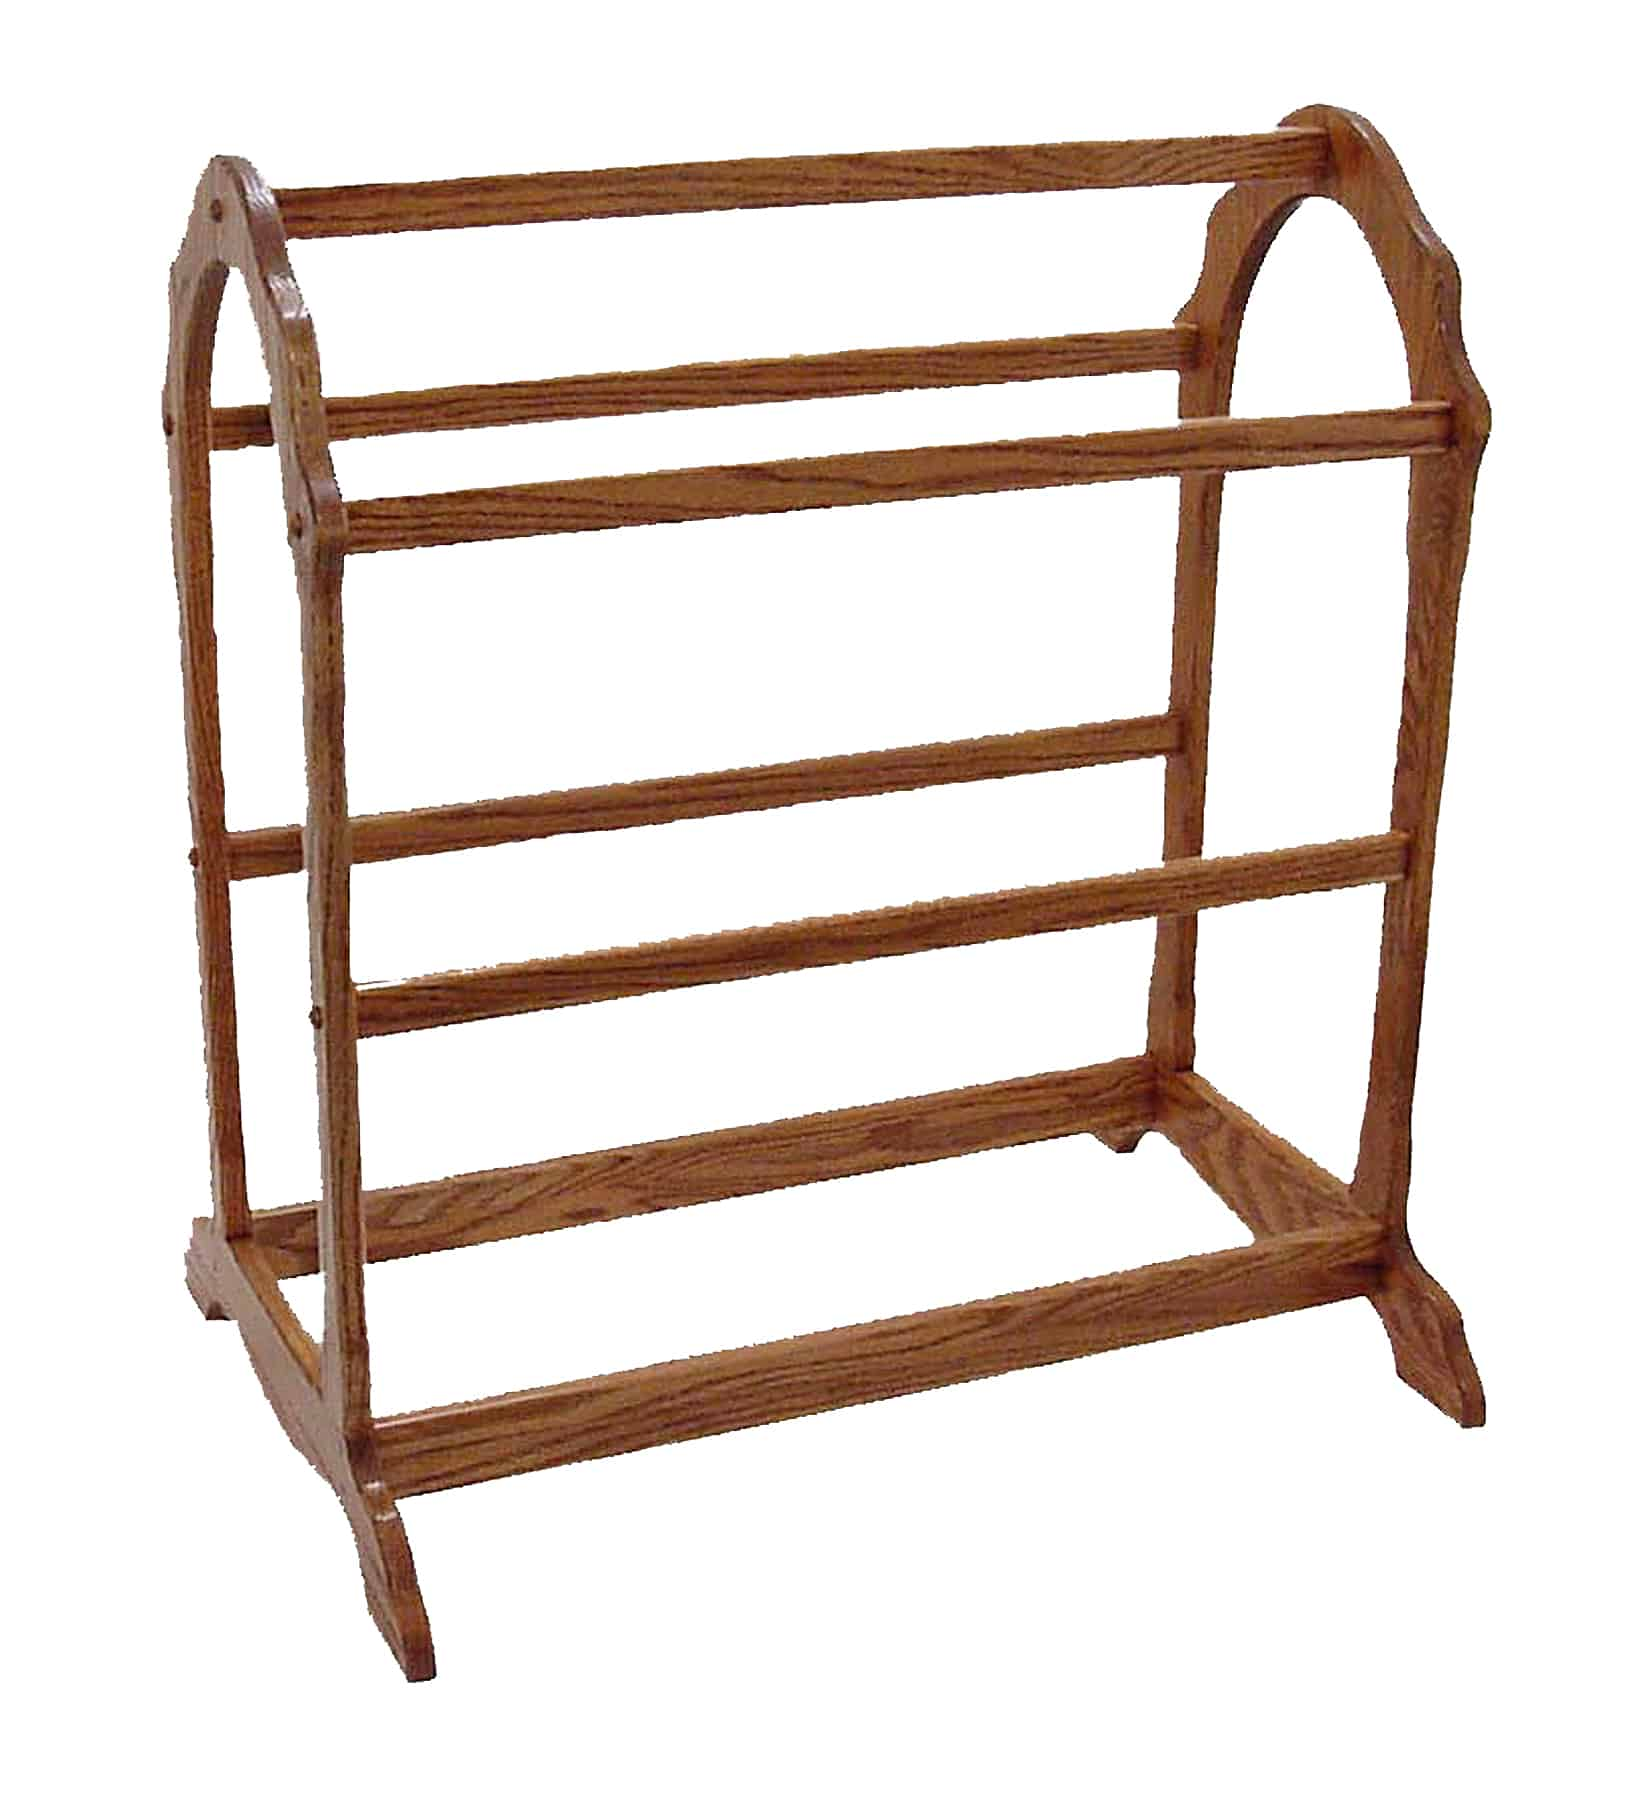 Open End Quilt Rack, Shown In Brown Maple With An Onyx